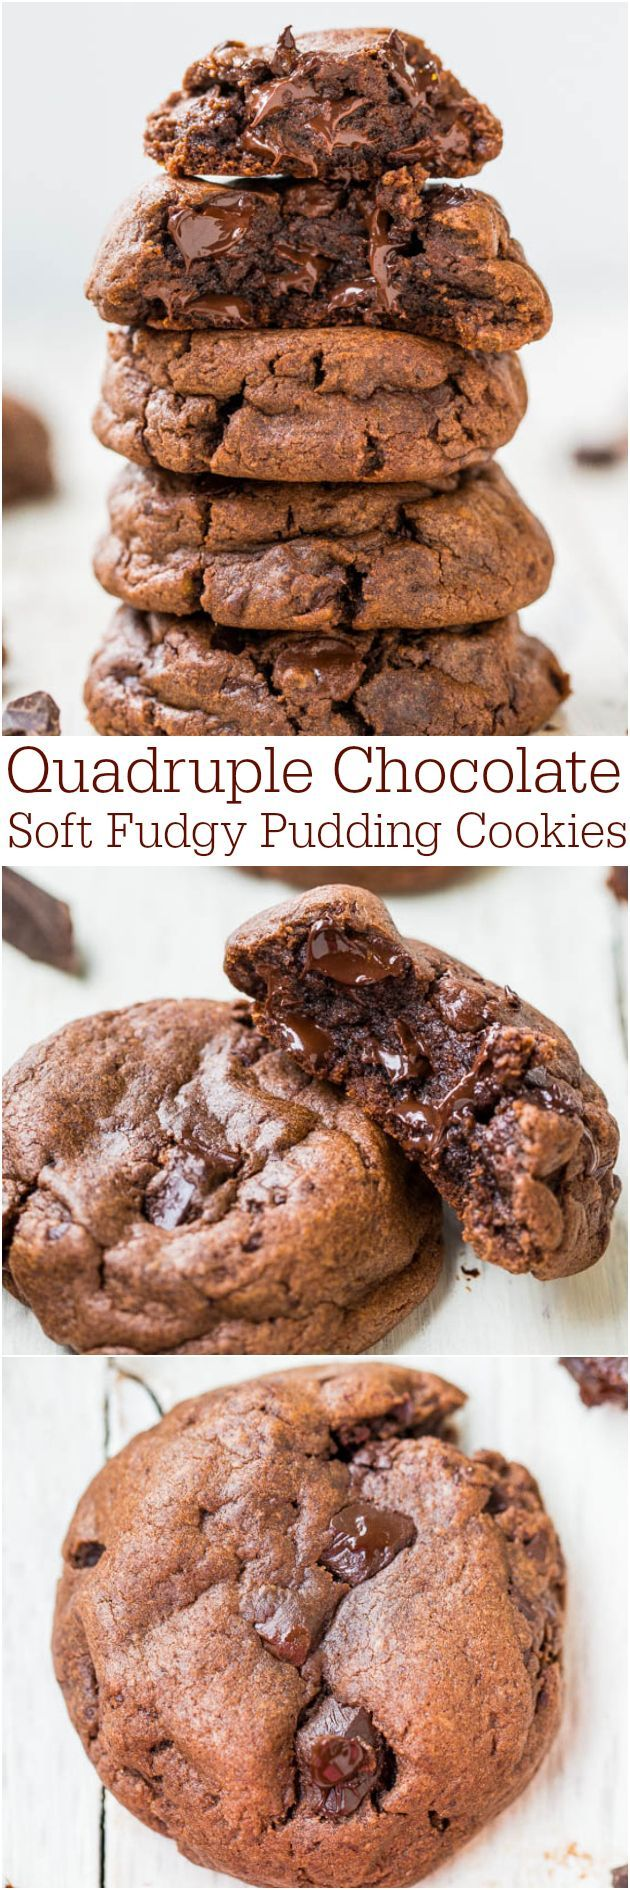 Quadruple Chocolate Soft Fudgy Pudding Cookies - Super soft and loaded with chocolate! They'll handle your fiercest chocolate cravings!!